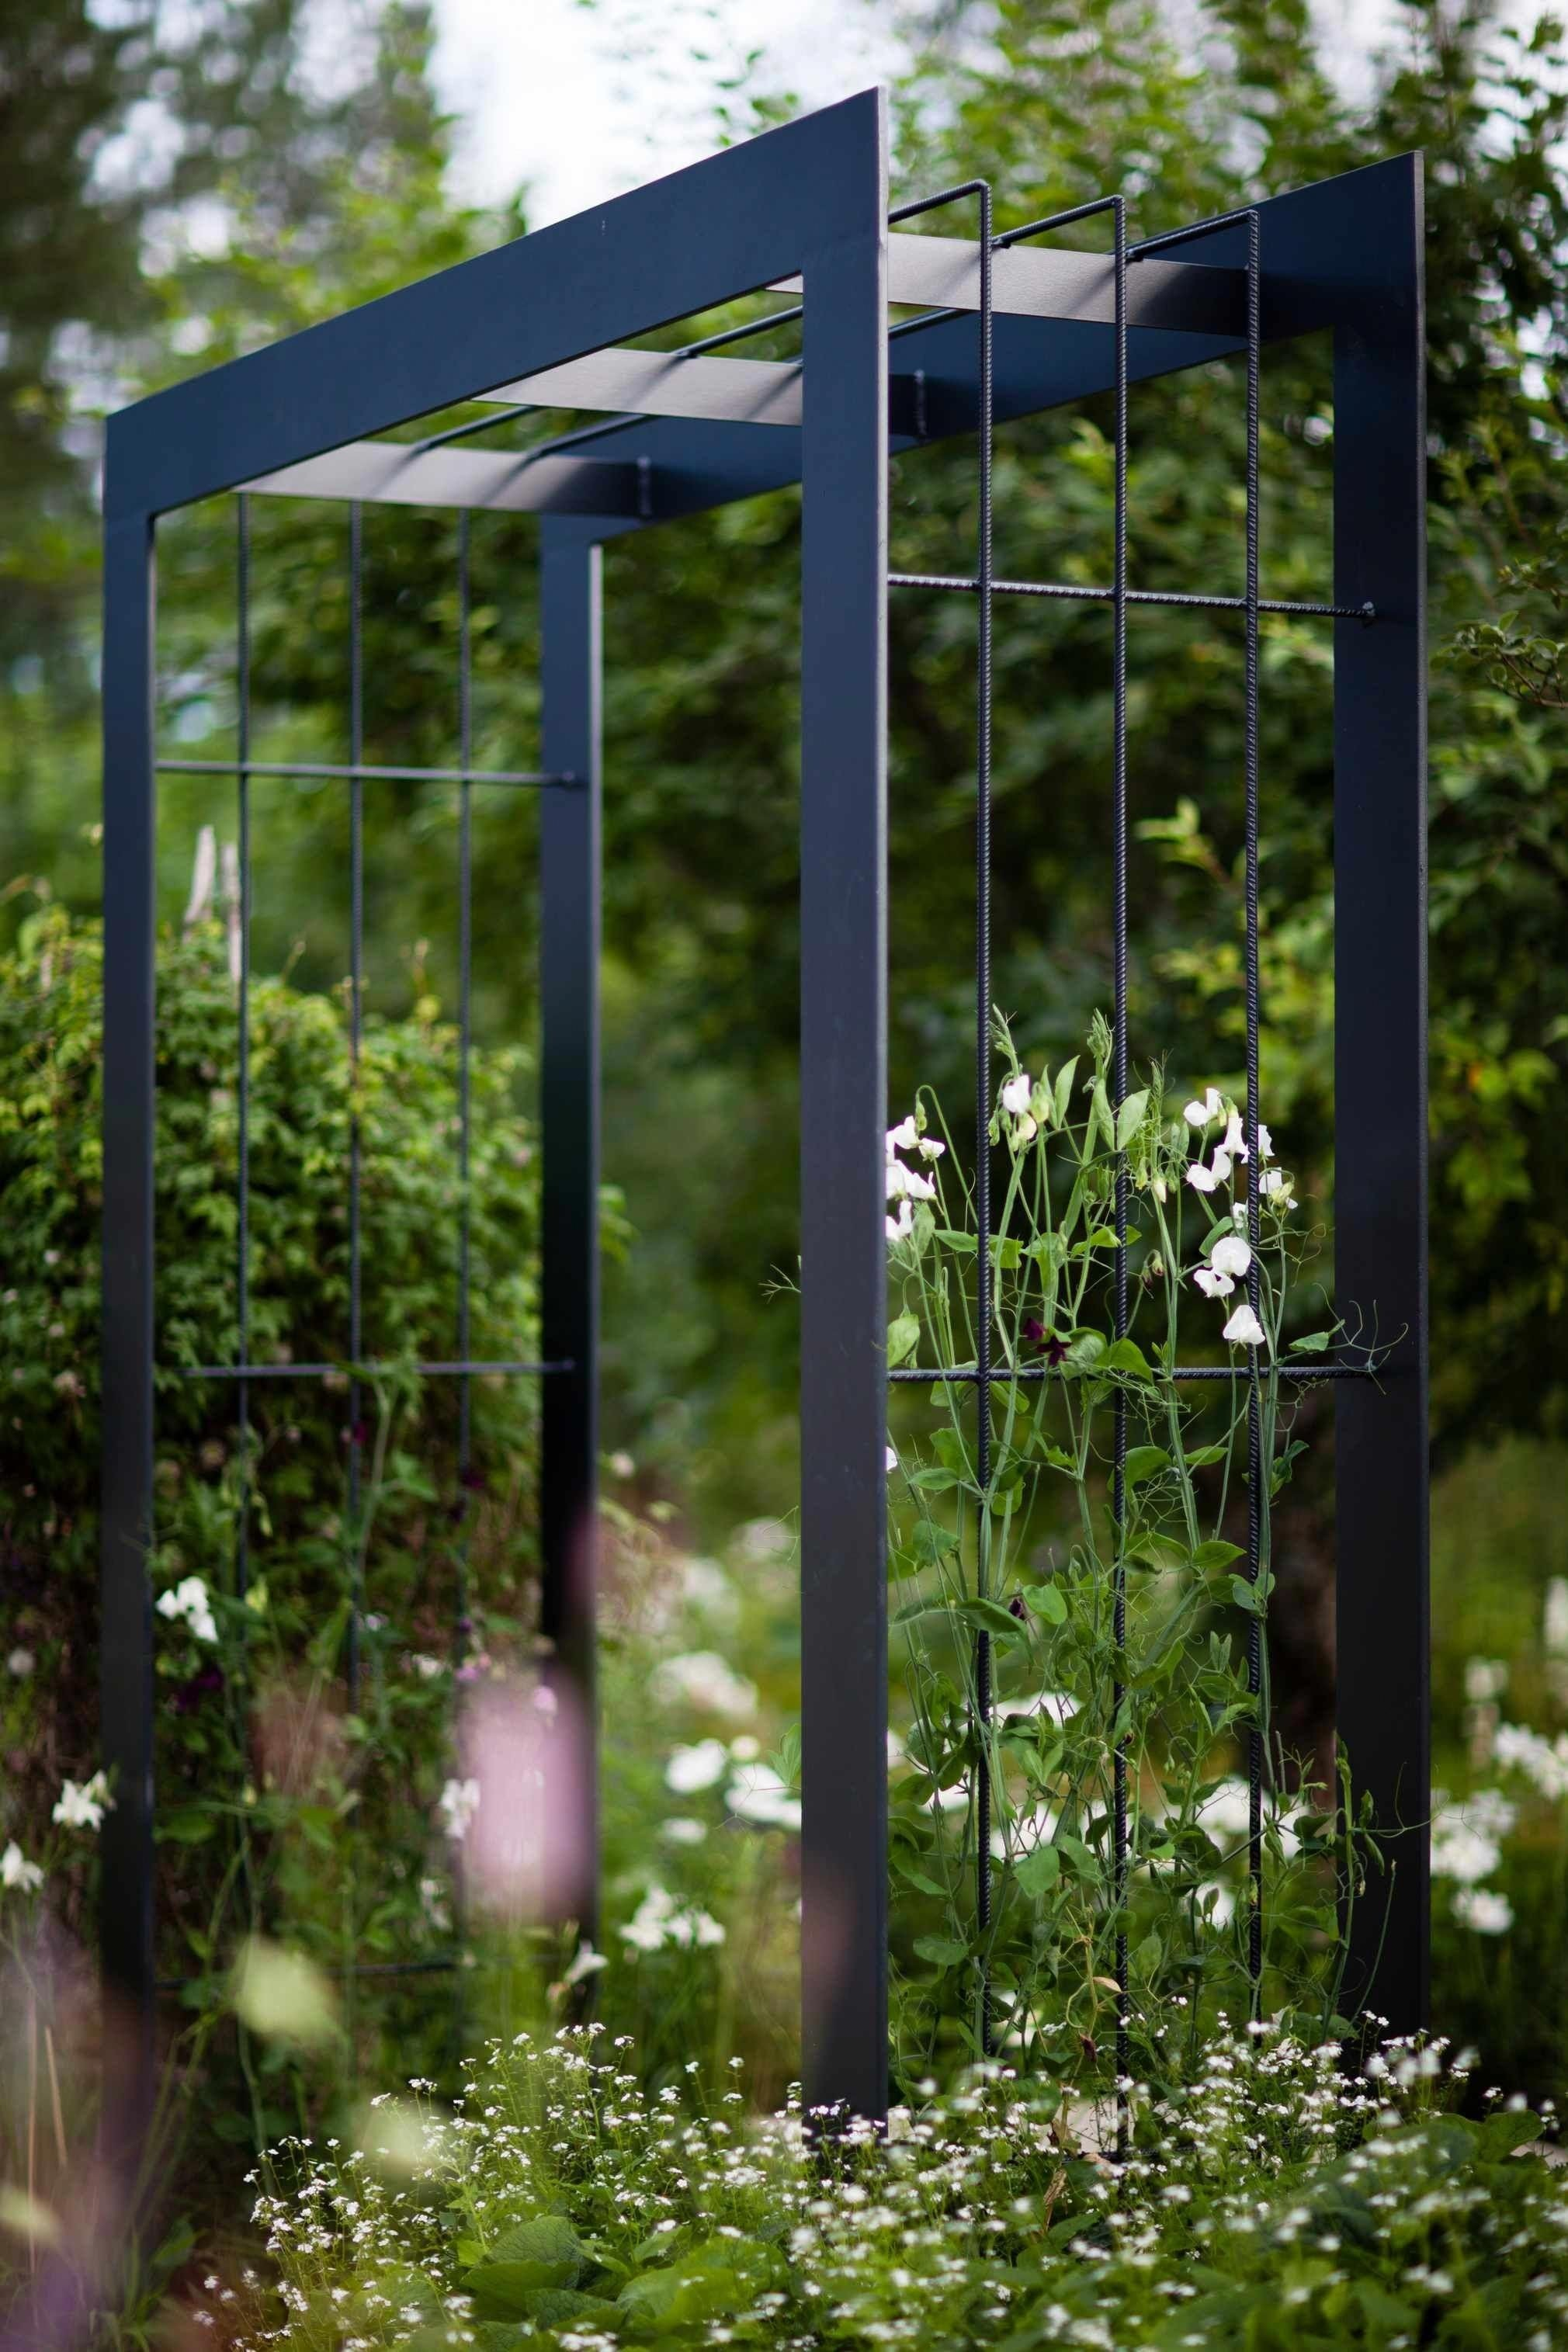 Metal Plant Arch Garden Steel Tube Archway Climbing Plants Climber Frame